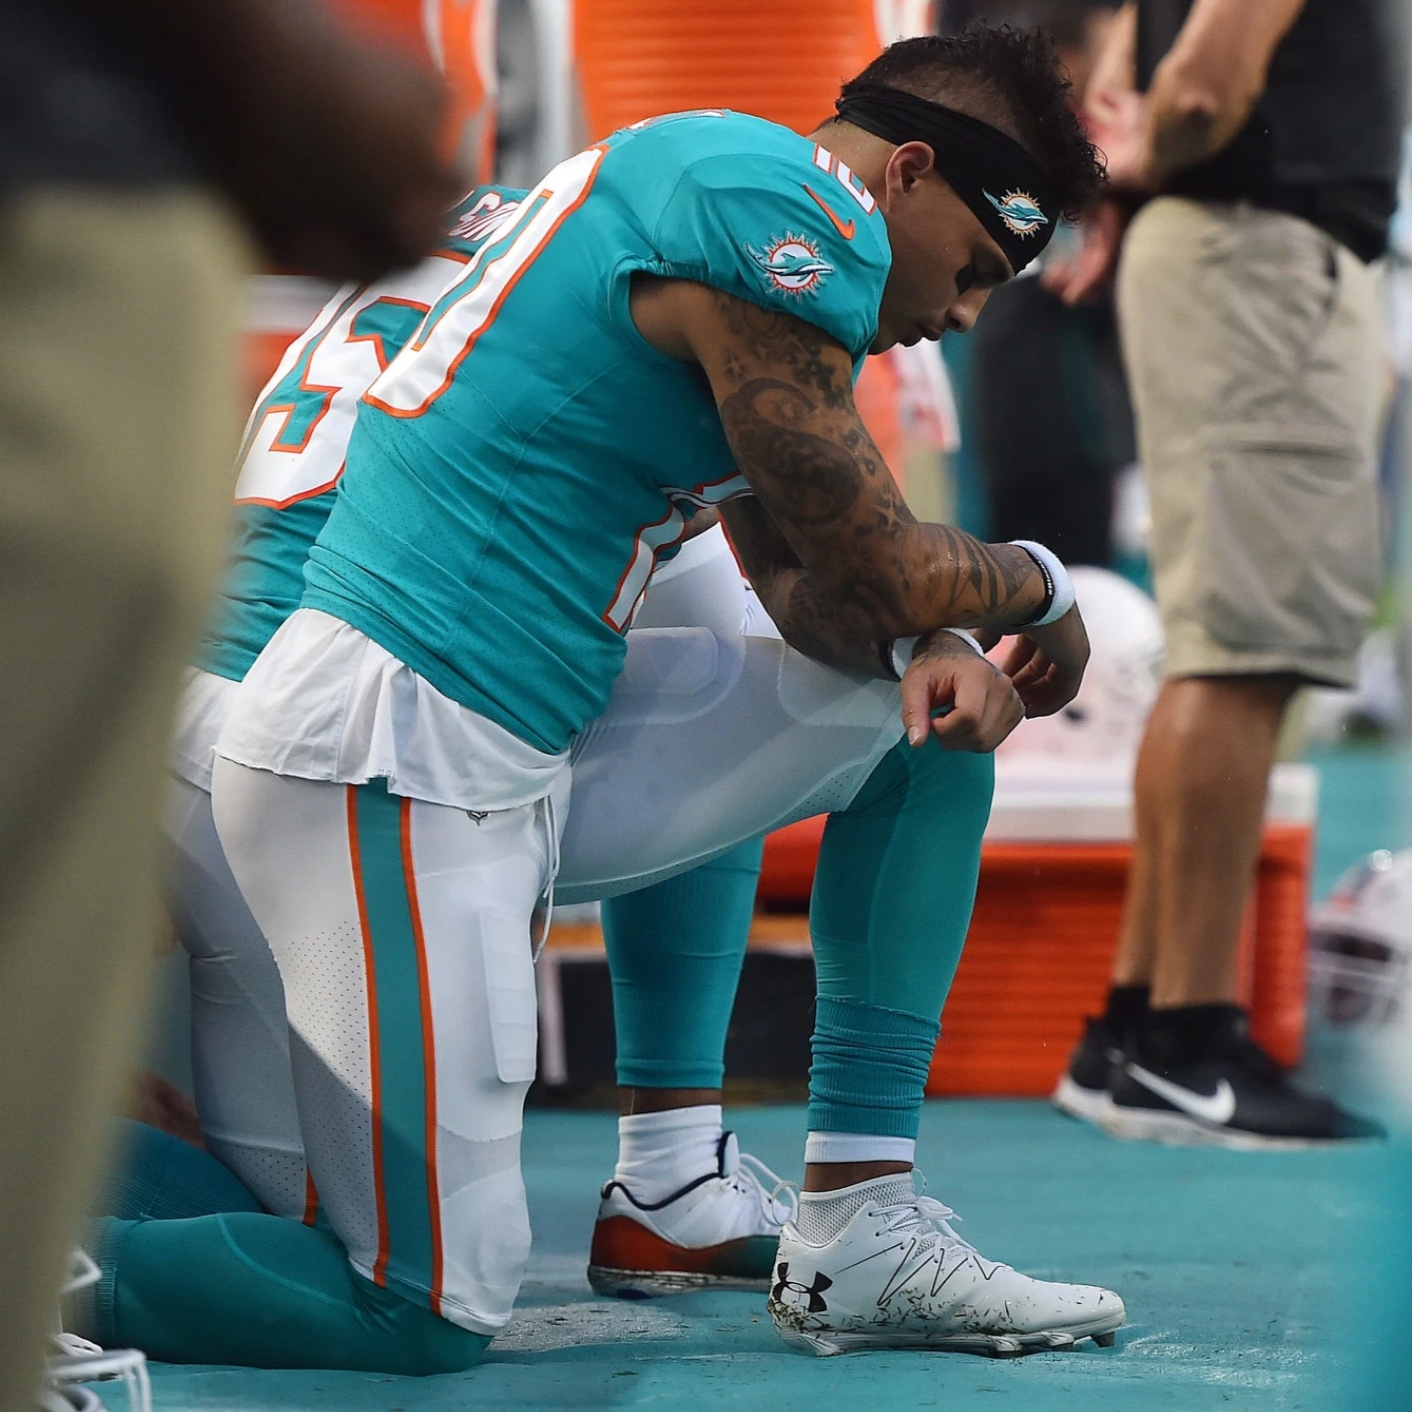 Kenny Stills Carries Colin Kaepernick's Torch By Continuing to Kneel - By the New York Times